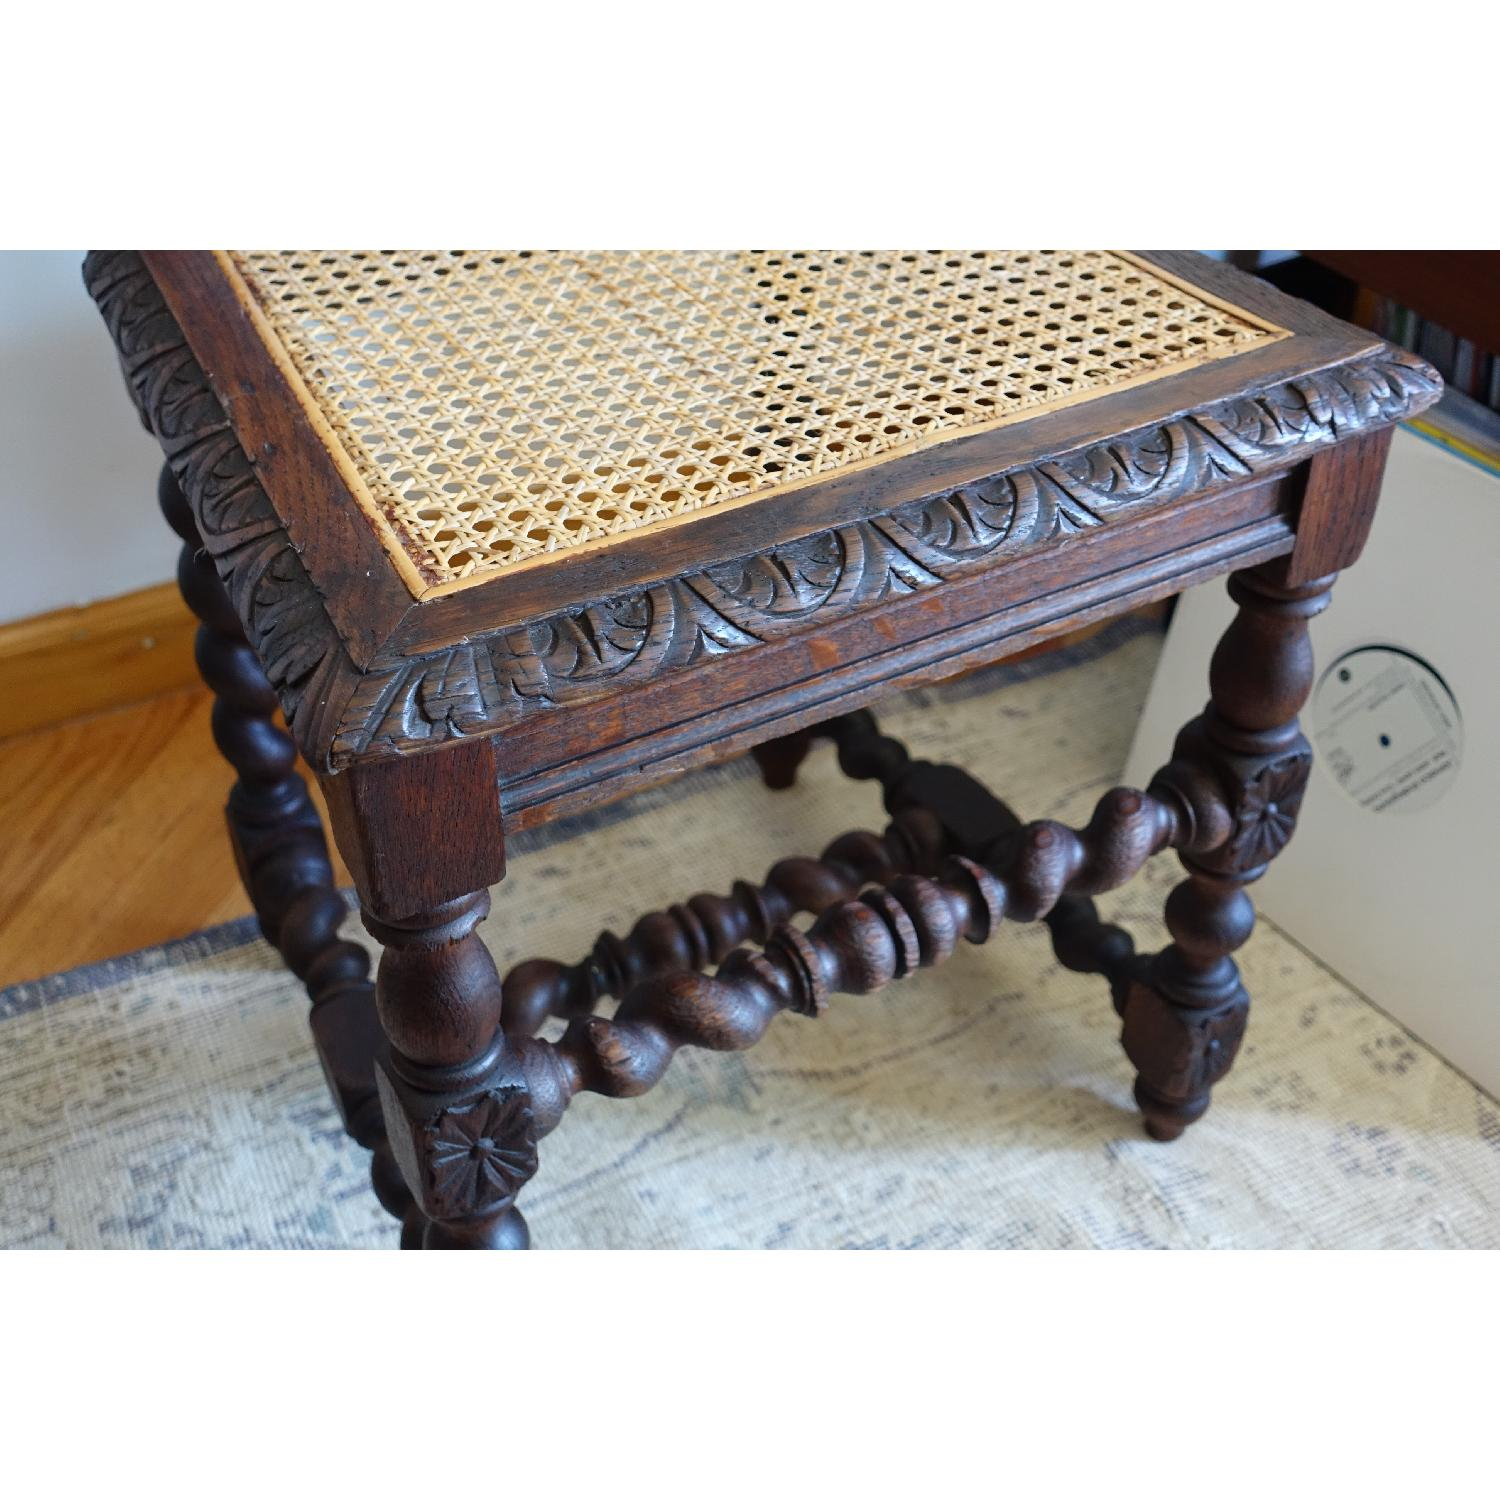 Antique French Colonial 19th Century Chair - image-14